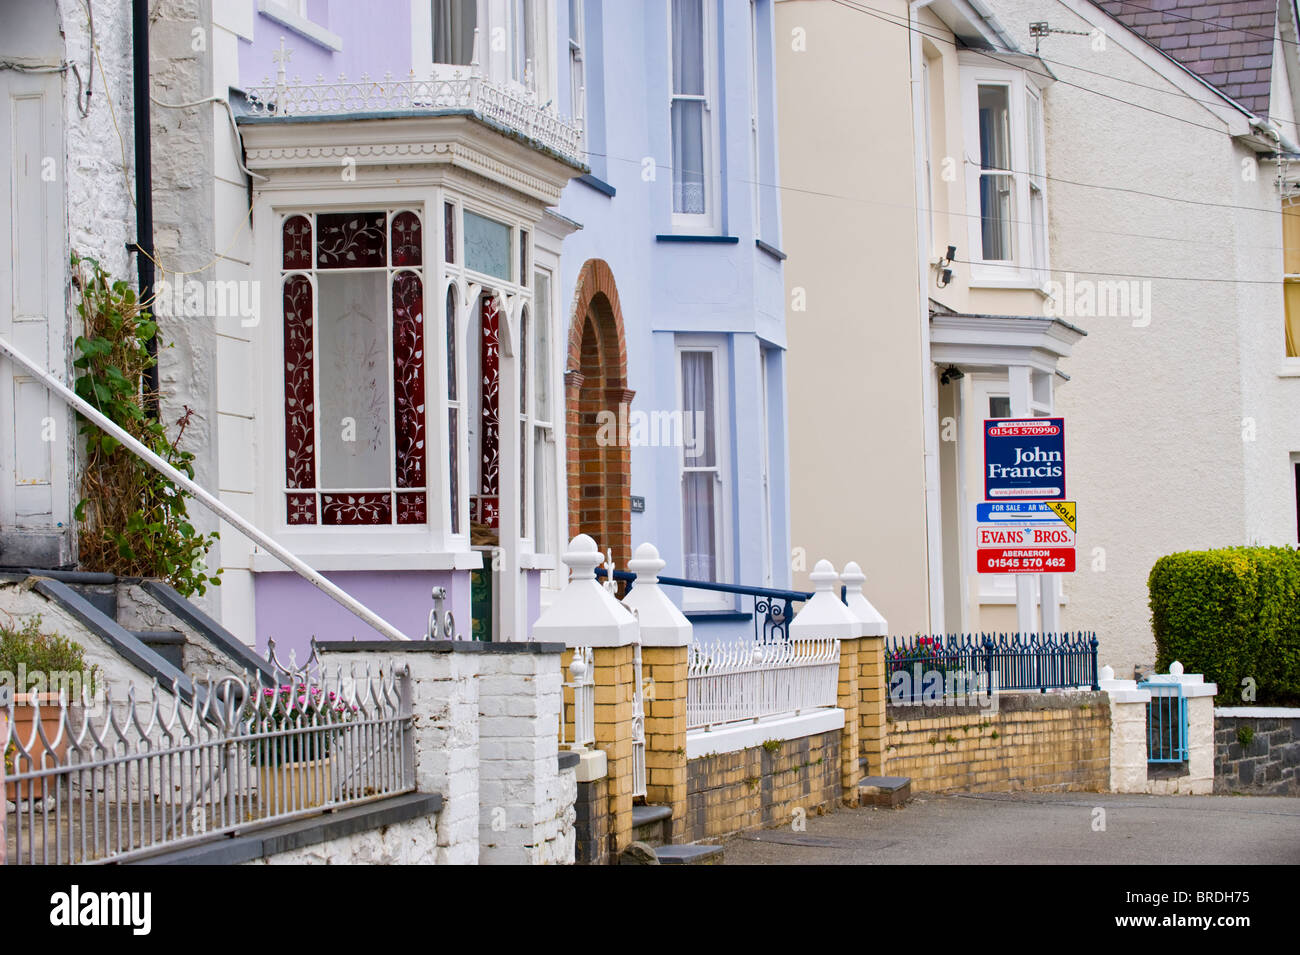 Period house for sale in the Welsh seaside holiday resort of New Quay Ceredigion West Wales UK - Stock Image